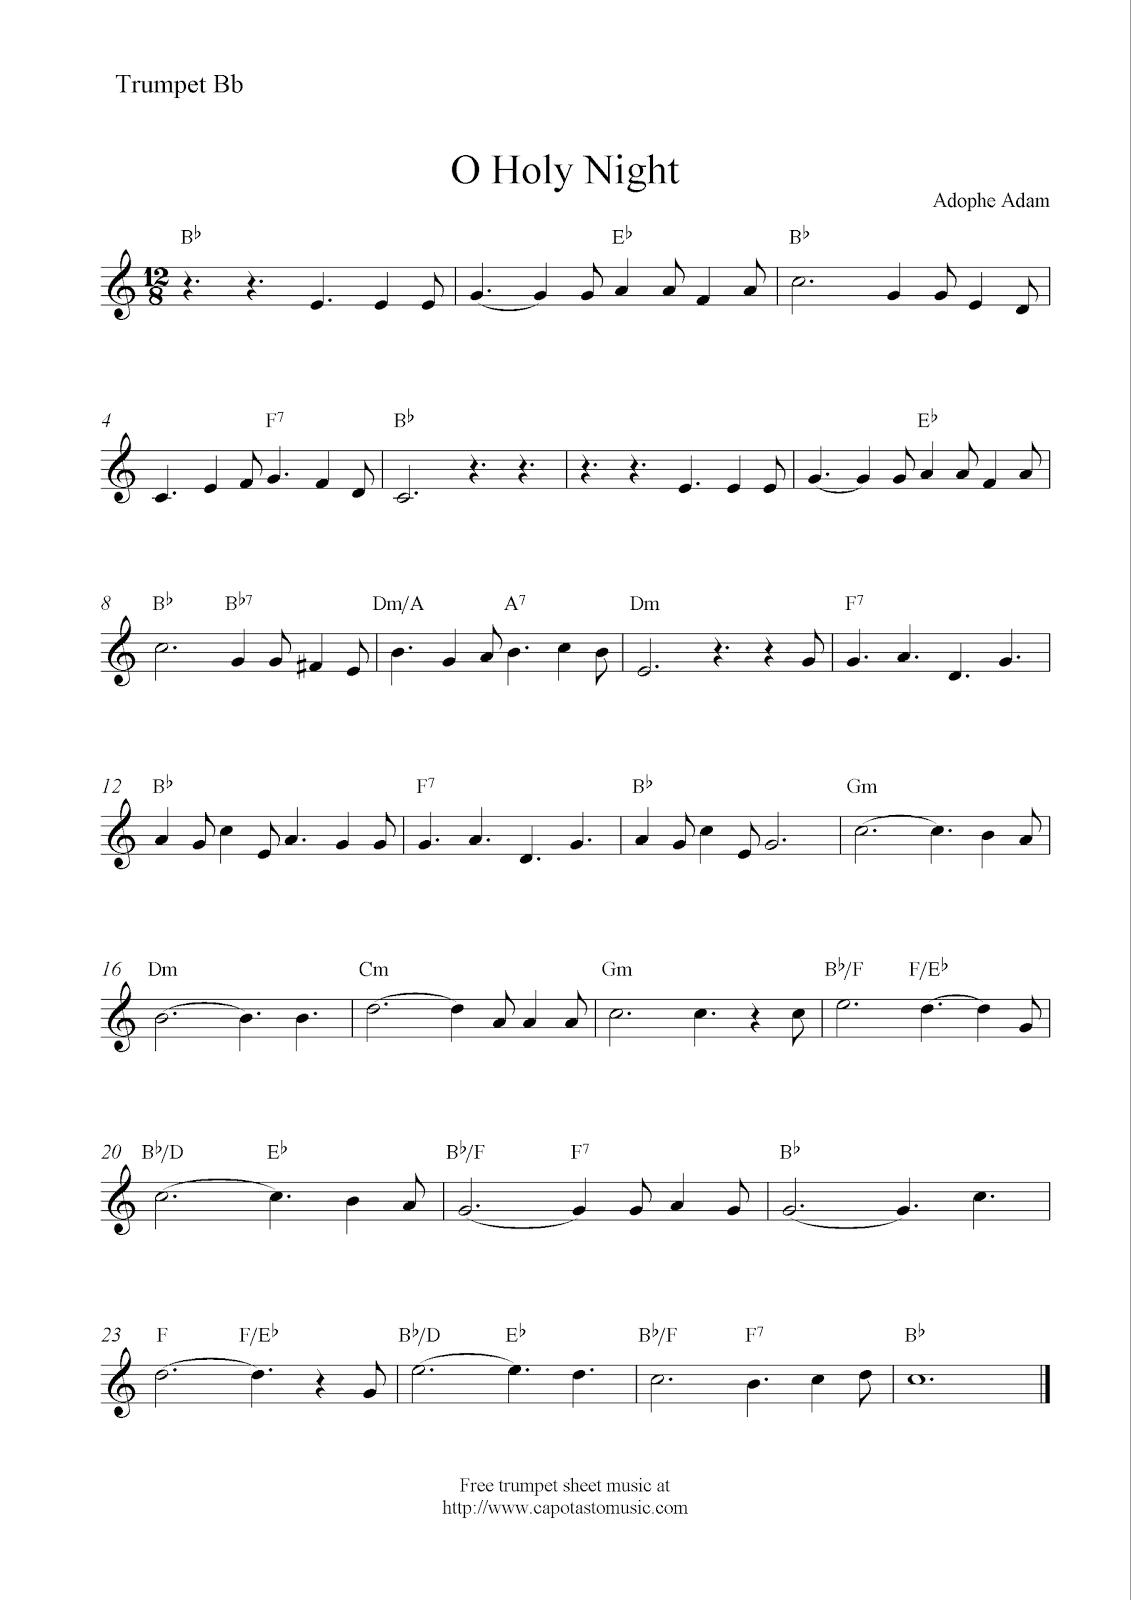 image about Free Printable Sheet Music for Trumpet named O Holy Evening, absolutely free Xmas trumpet sheet audio notes